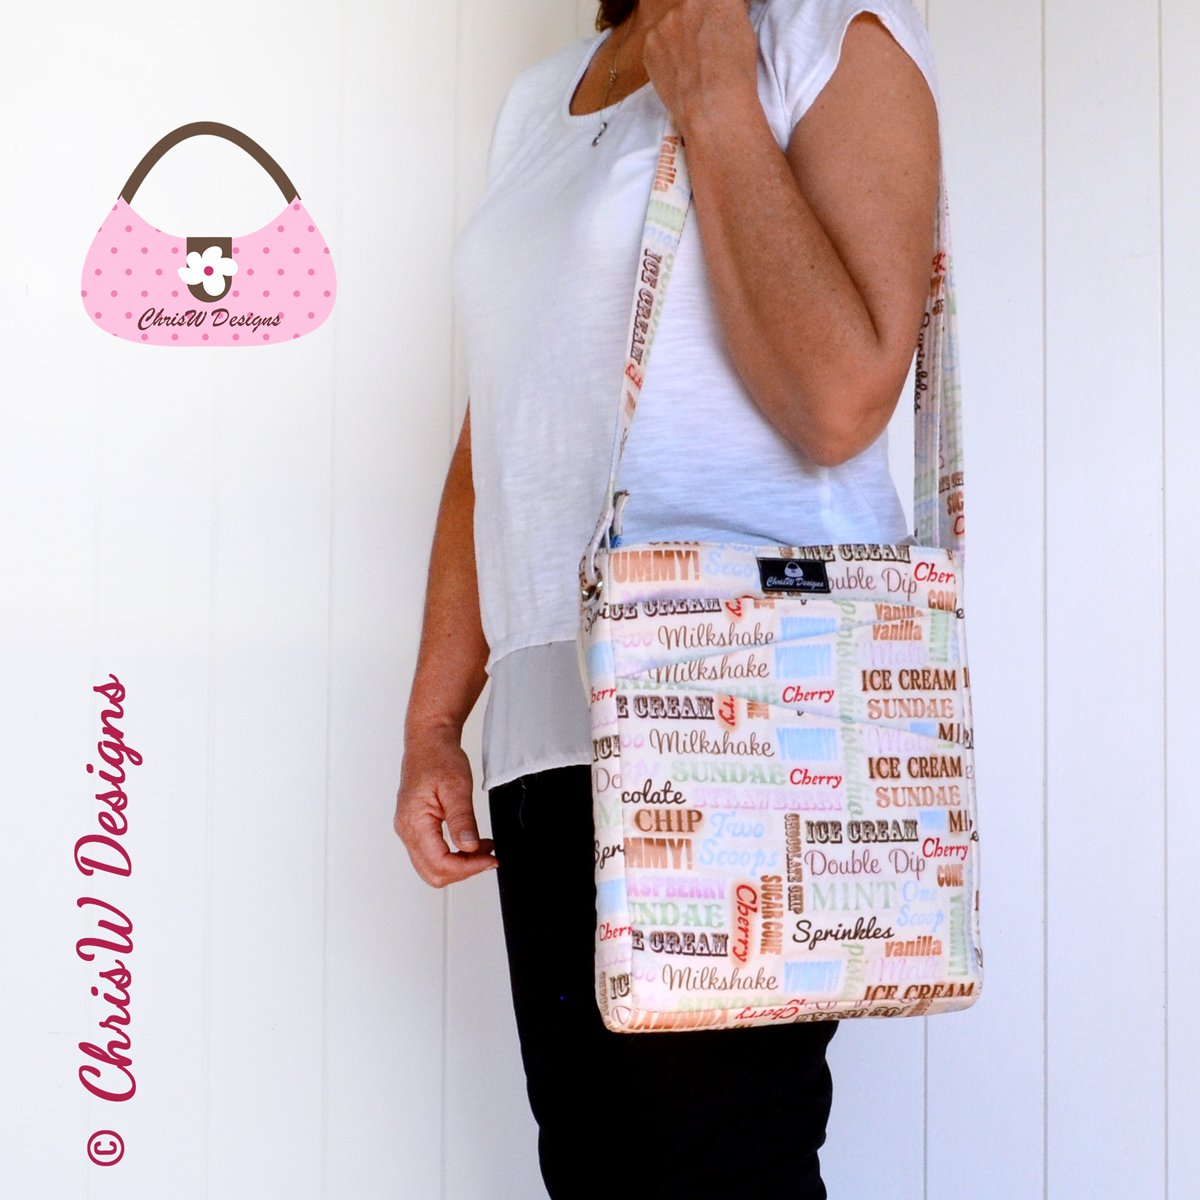 Lombard Street – A ChrisW CDesigns Designer bag Sewing Pattern